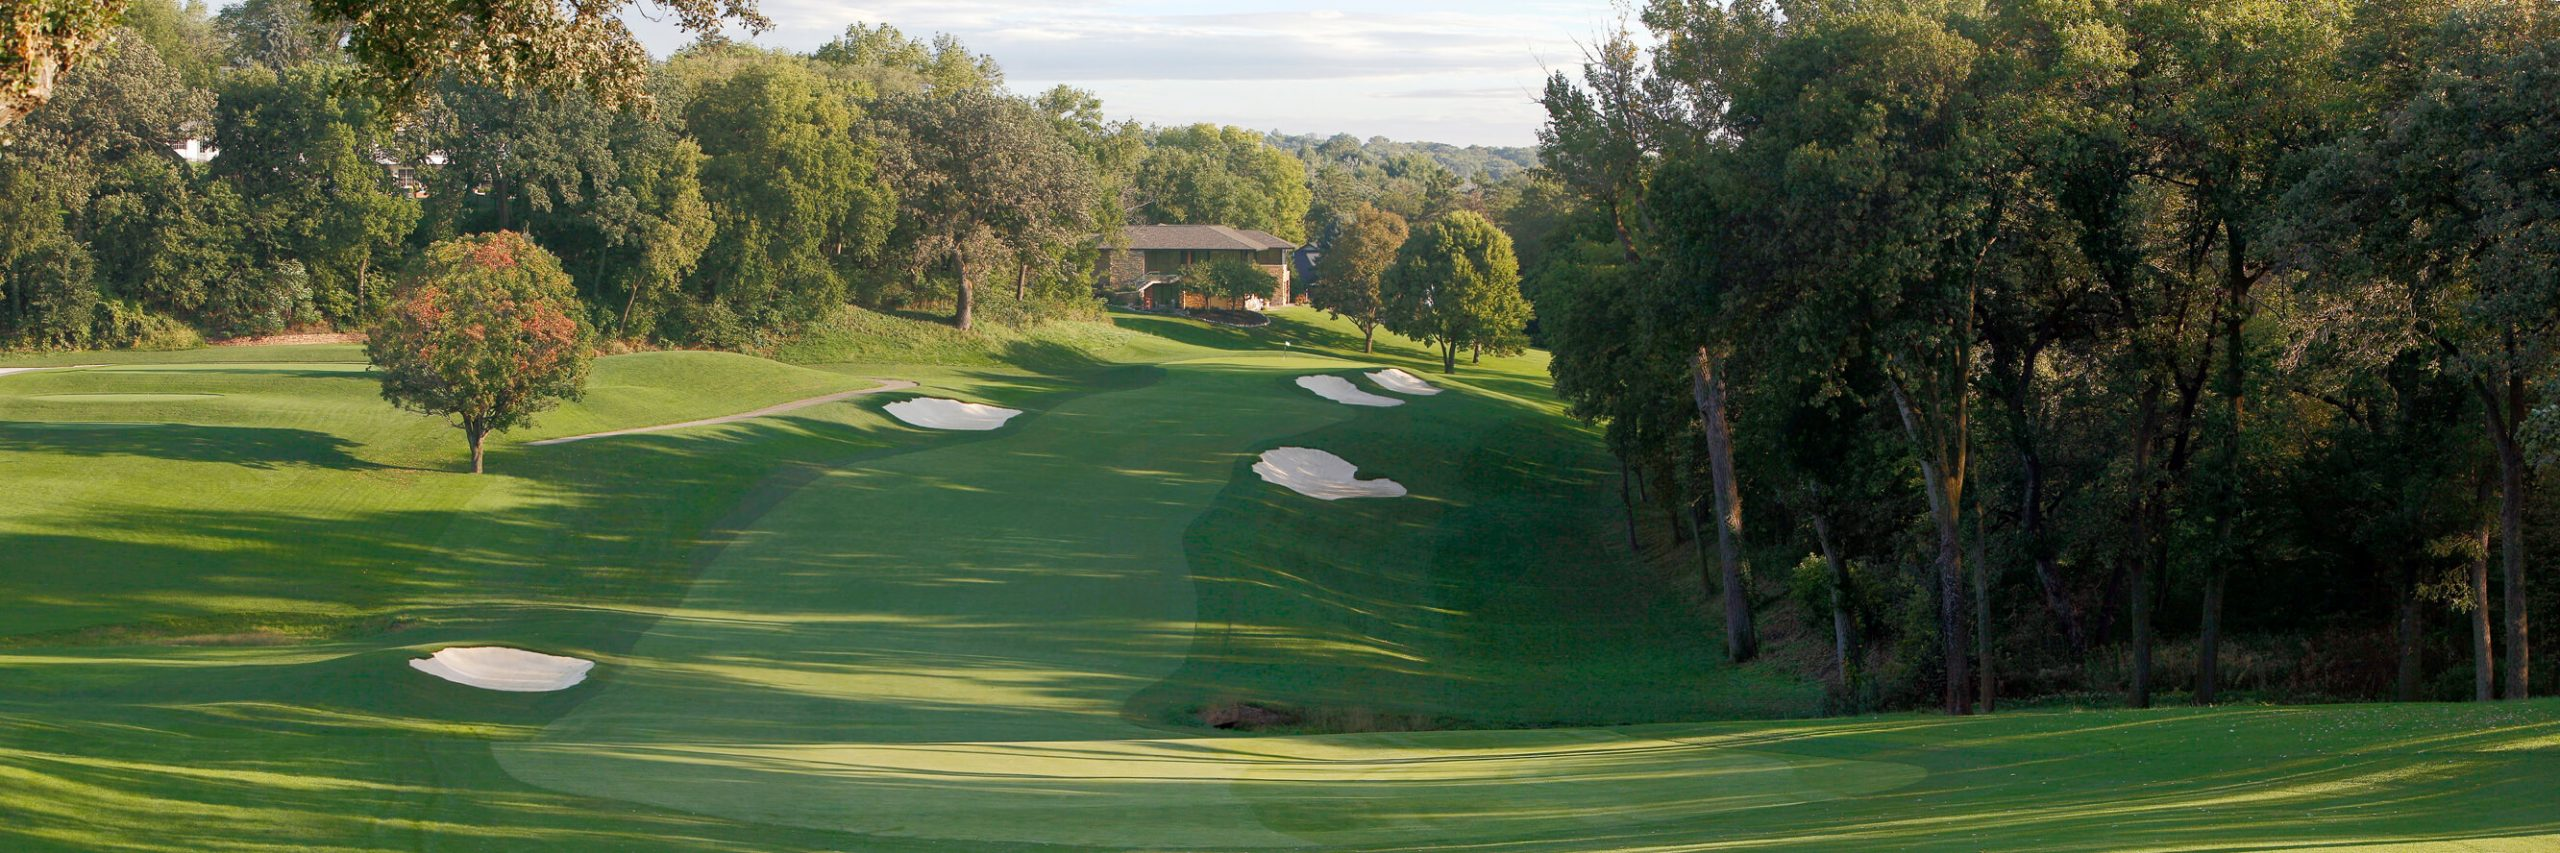 Golf Course Image - Omaha Country Club No. 10B